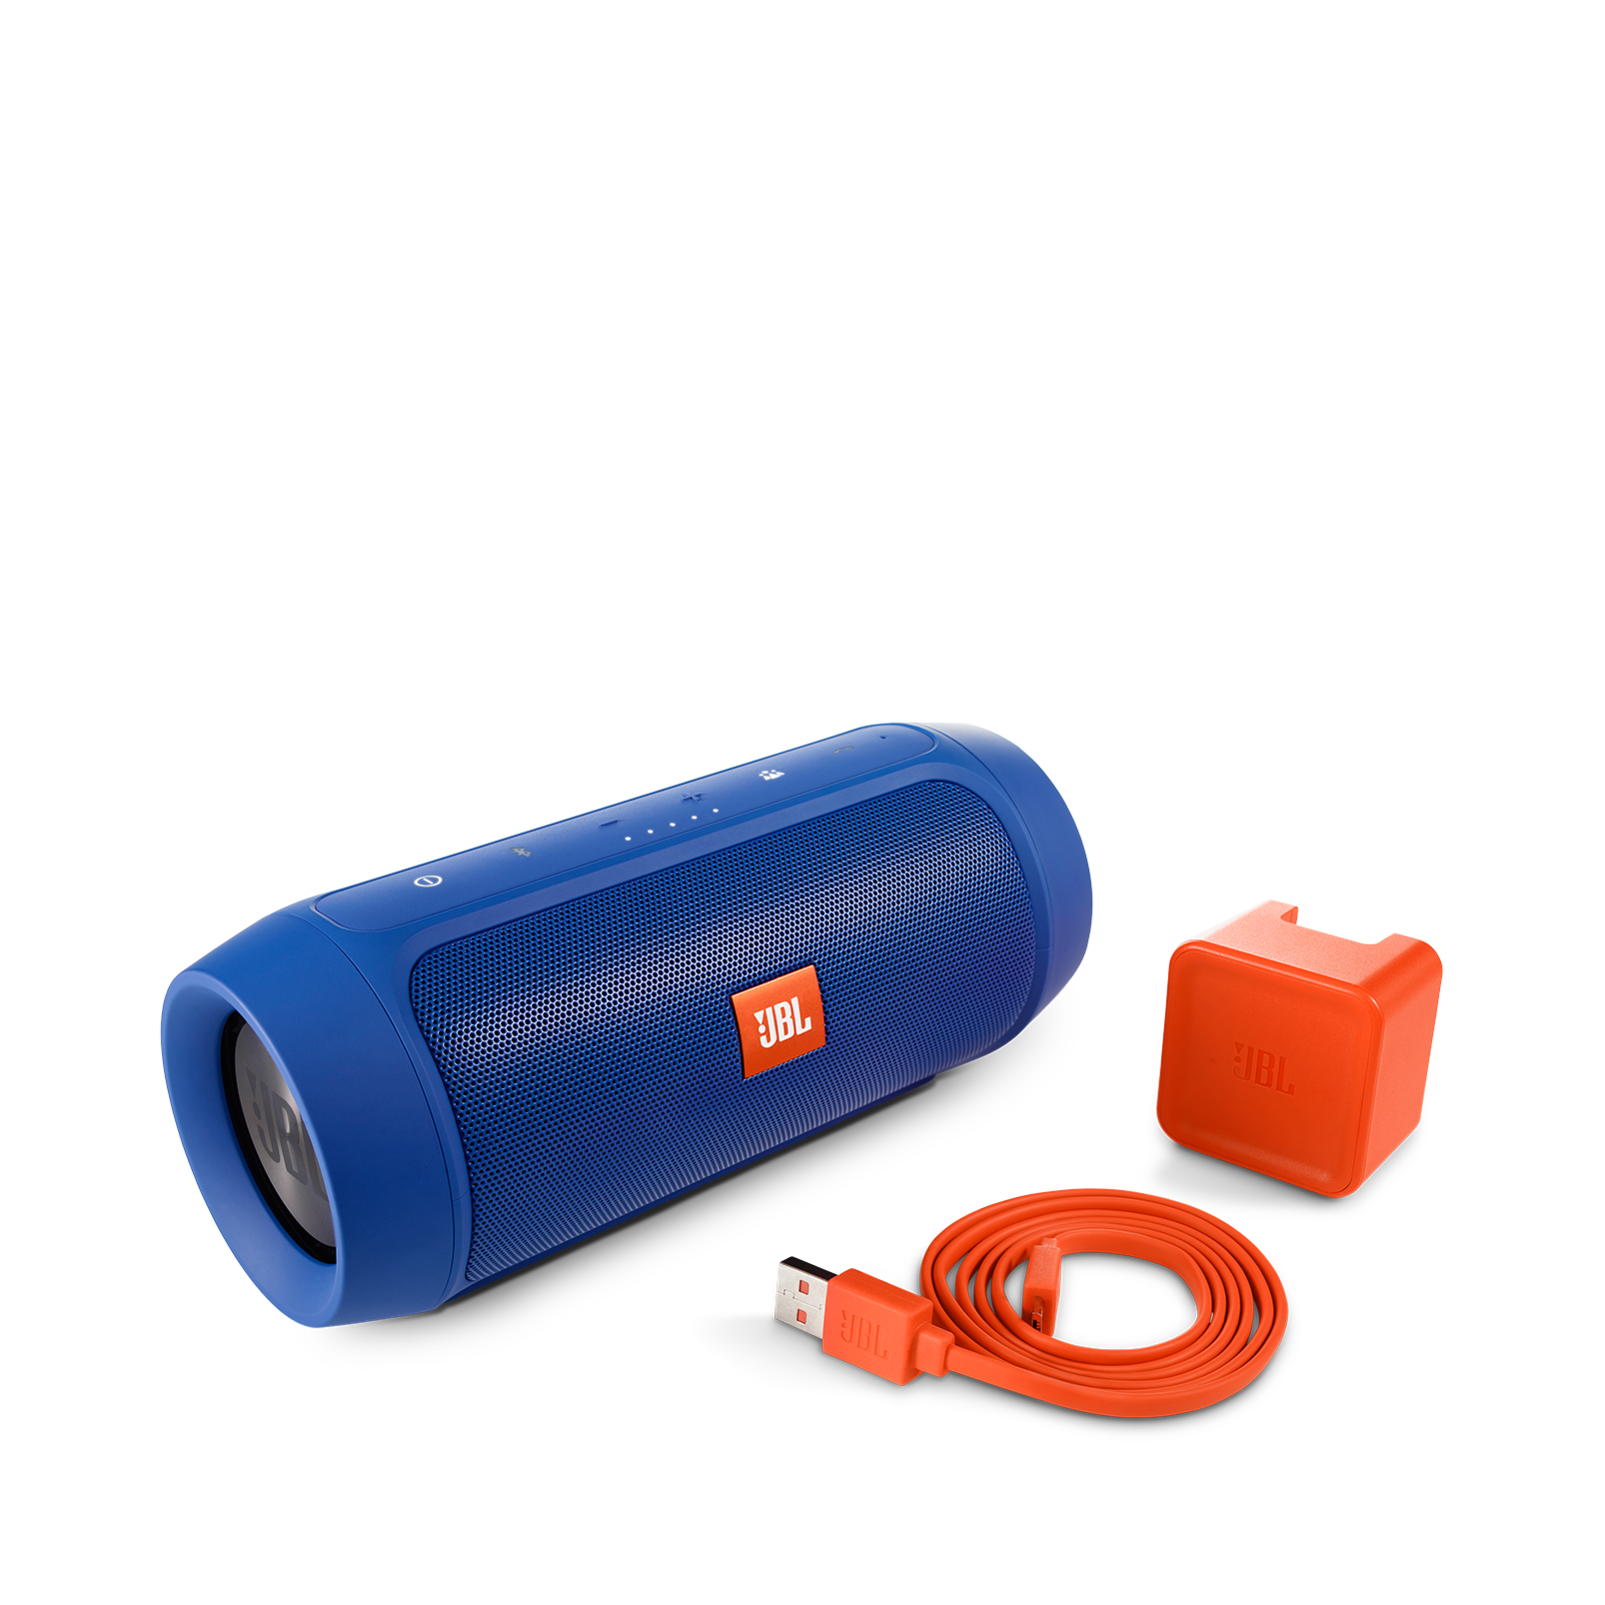 Jbl charge 2 full featured splashproof portable speaker with high capacity battery to charge - Jbl charge 2 vs charge 3 ...